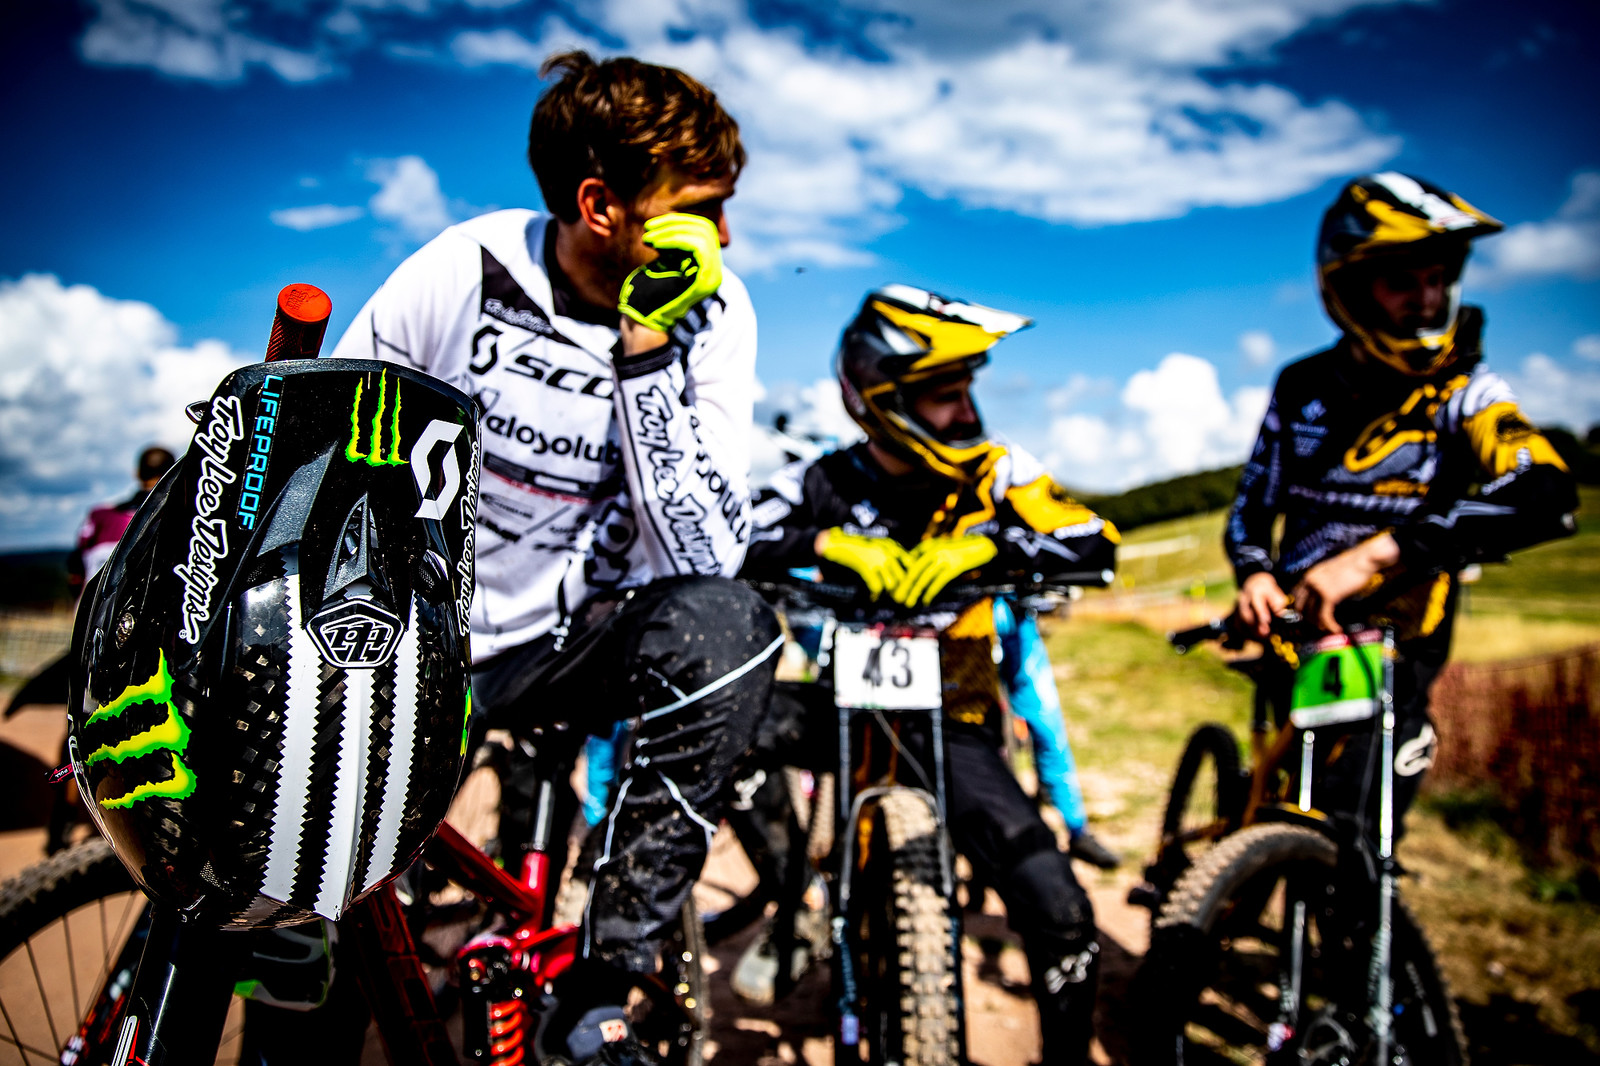 Adidas Is That You? - PIT BITS - La Bresse World Cup Downhill - Mountain Biking Pictures - Vital MTB